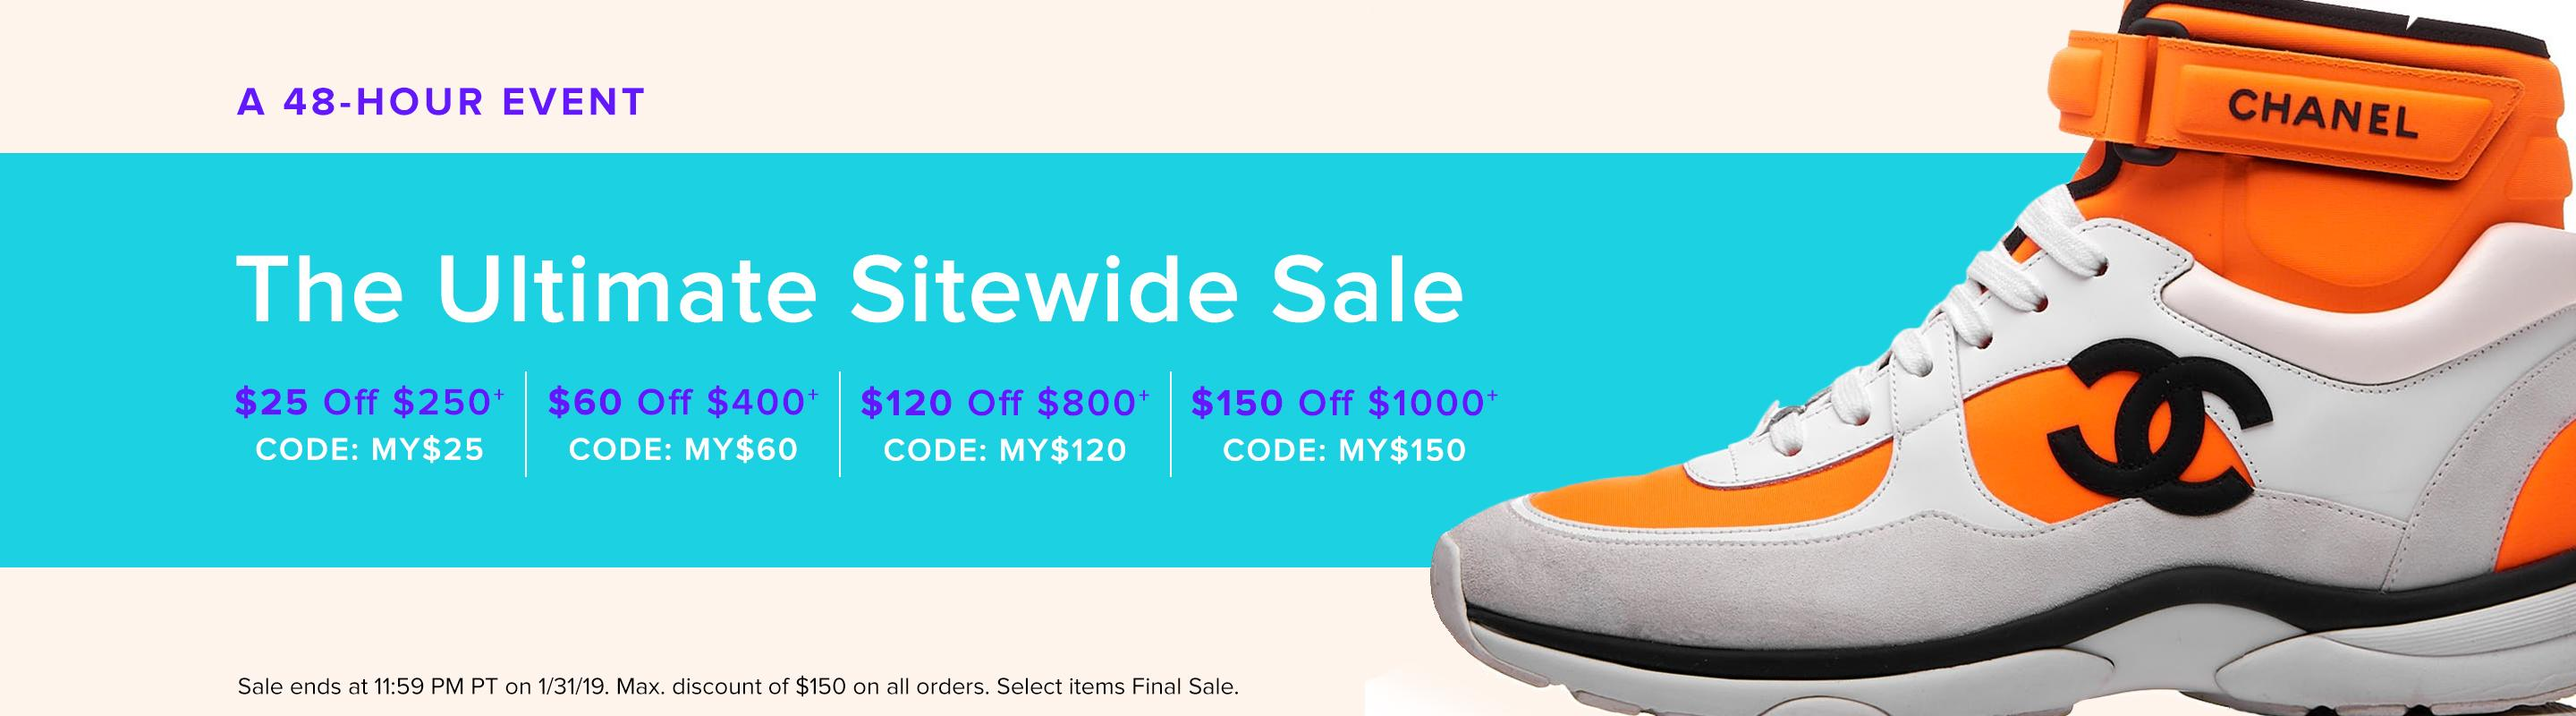 The Ultimate Sitewide Sale